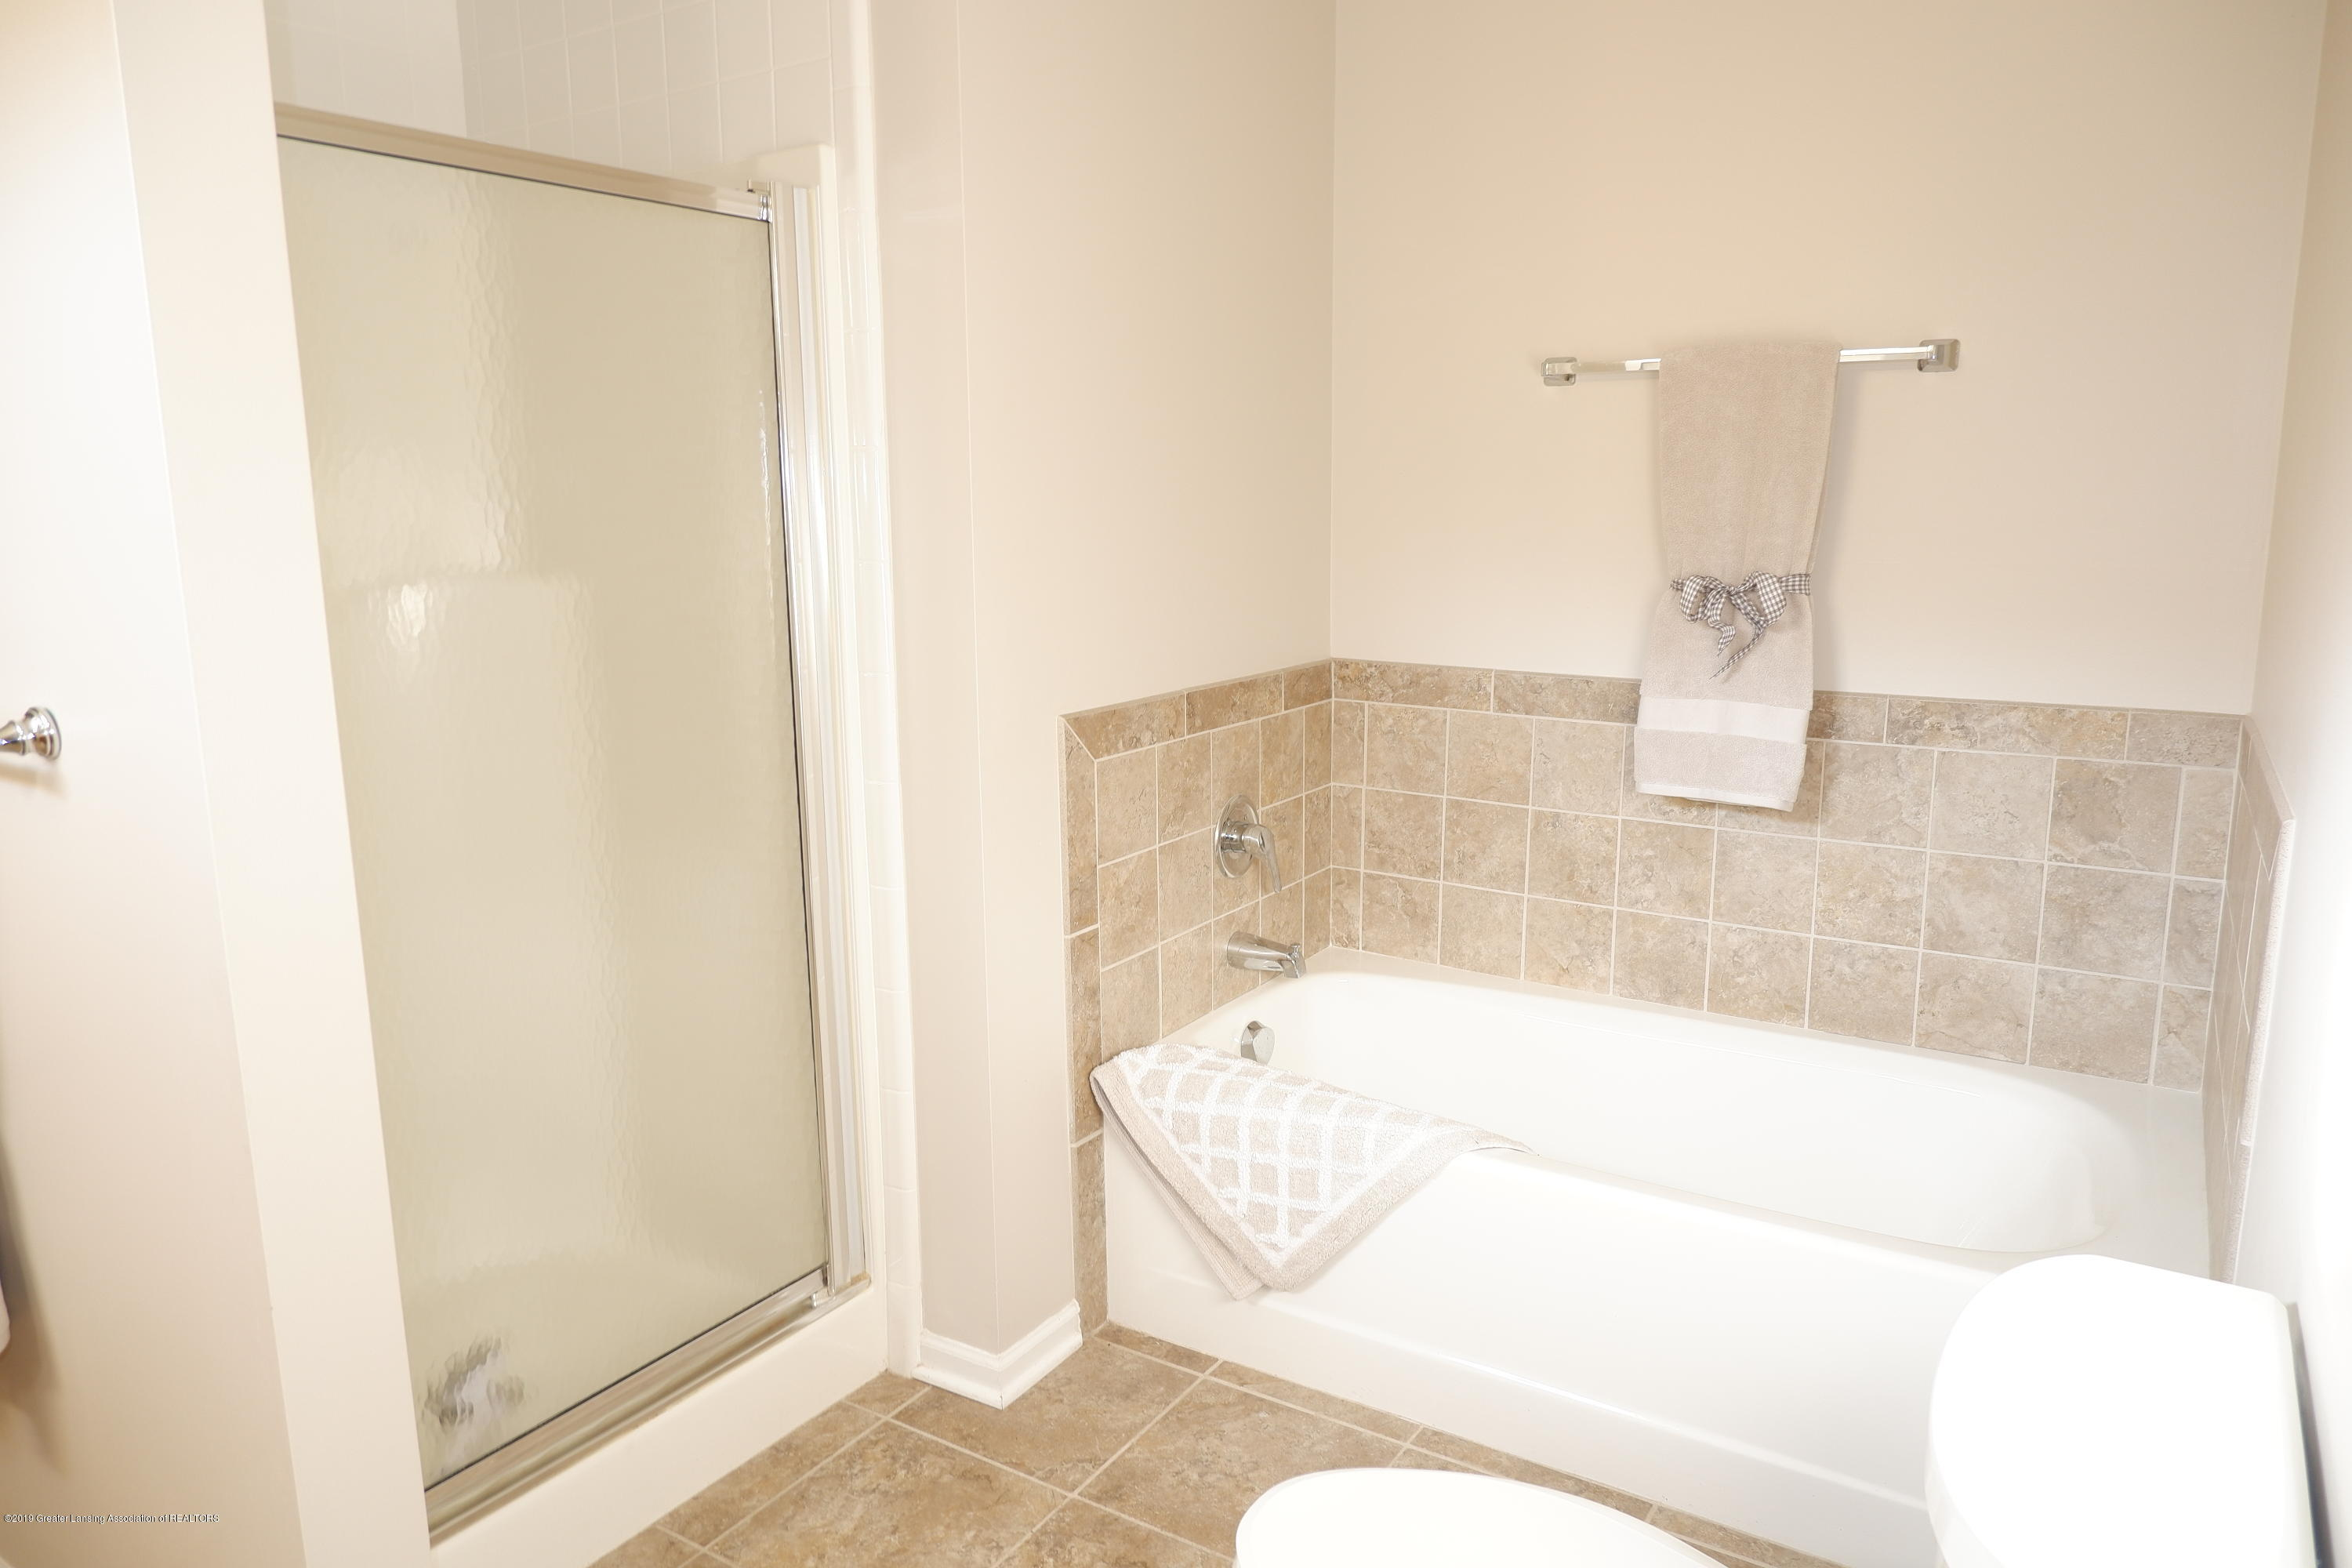 5250 E Hidden Lake Dr 89 - Shower plus bathtub - 22